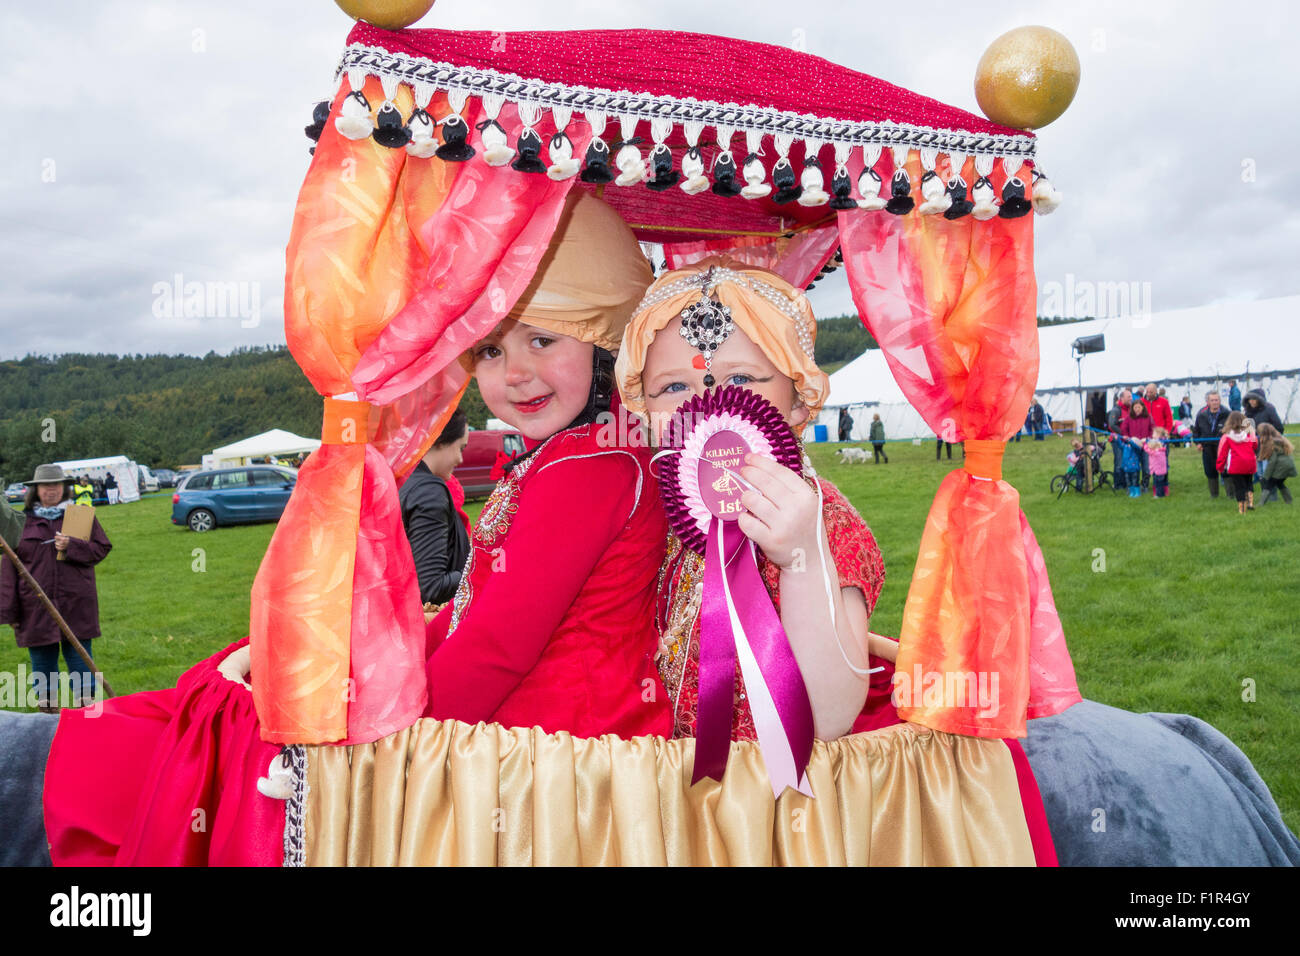 Kildale, North Yorkshire, UK. 5th September, 2015. Fantastic costumes by the winners of the mounted pony fancy dress - Stock Image